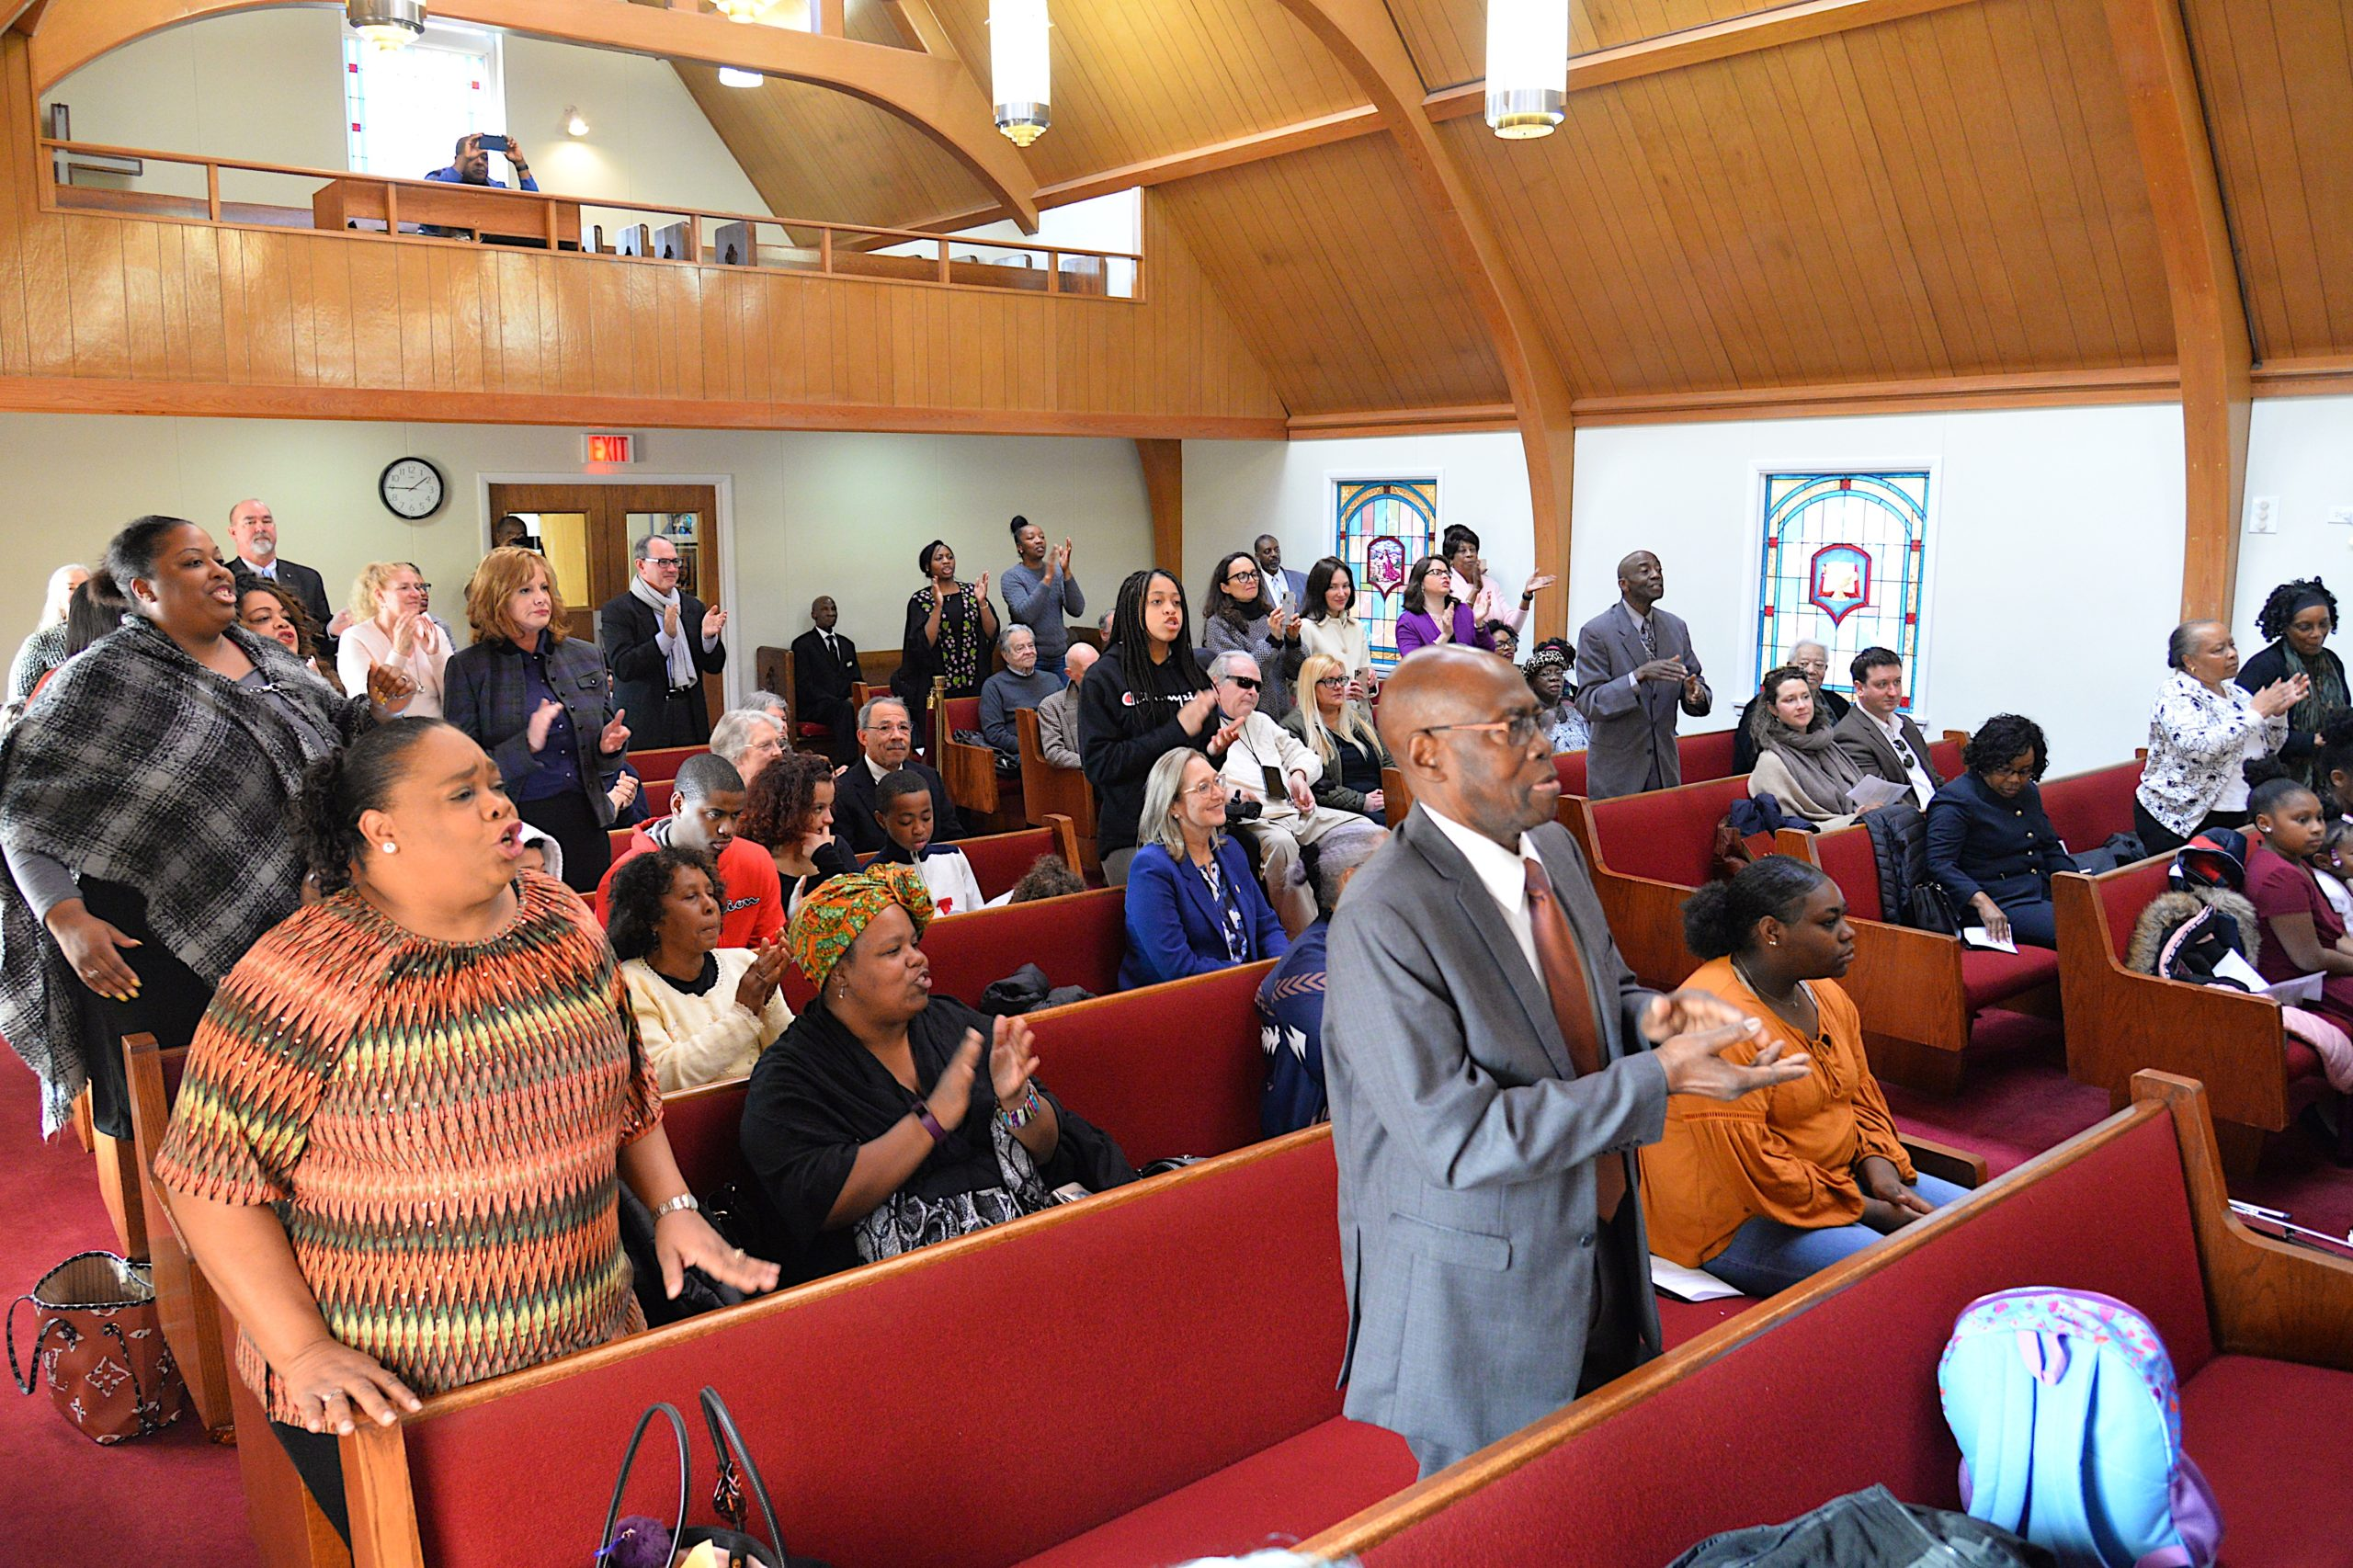 A special service honoring Martin Luther King Jr. took place at Calvary Baptist Church on Monday. The keynote speaker was Dr. Georgette L. Grier-Key. KYRIL BROMLEY